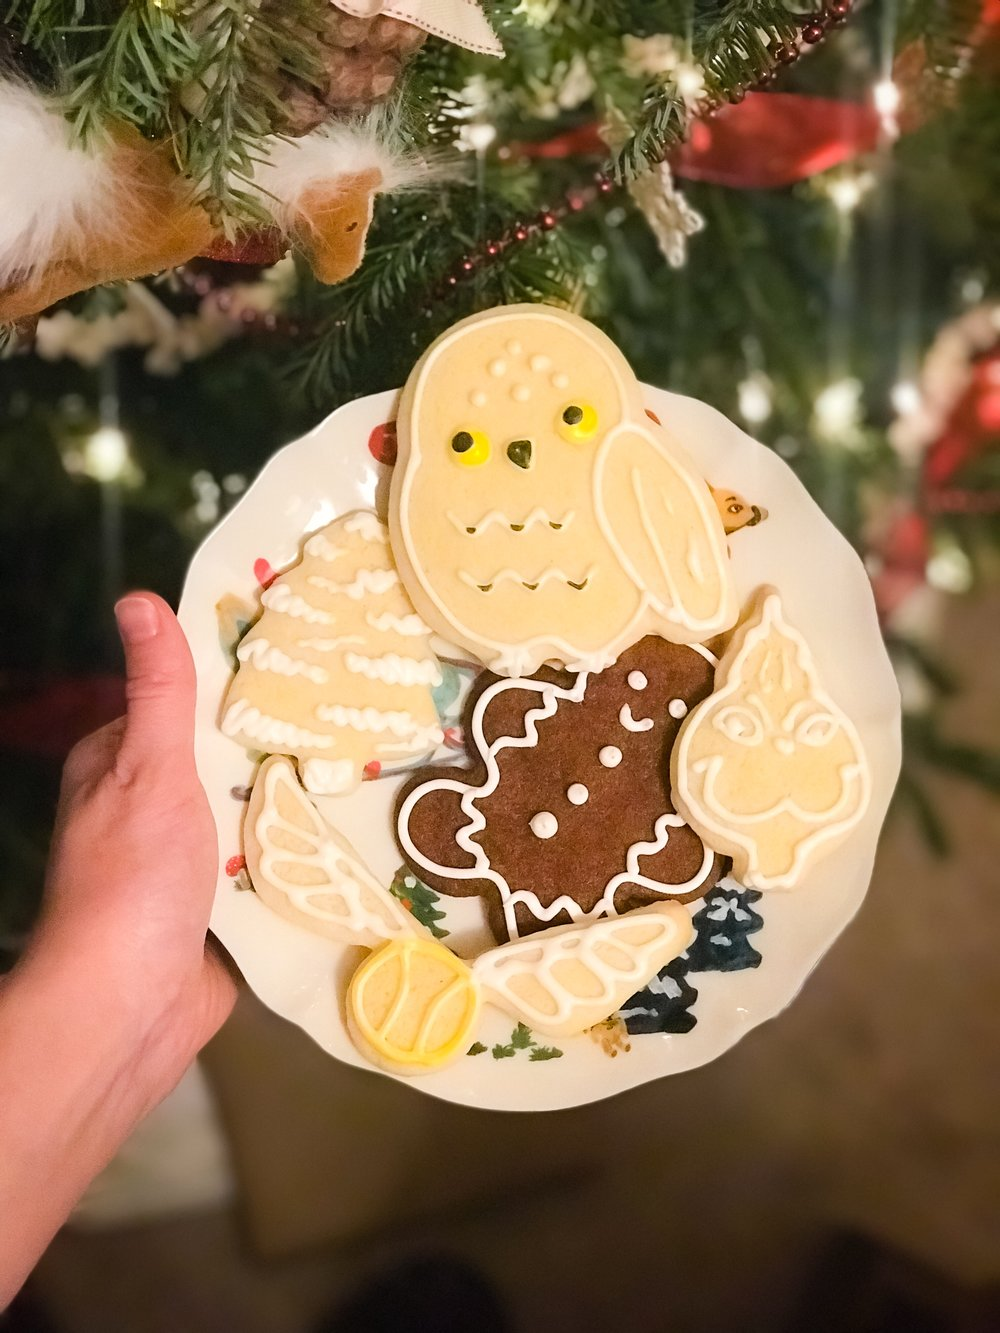 So Santa got Hedwig in his cookies.